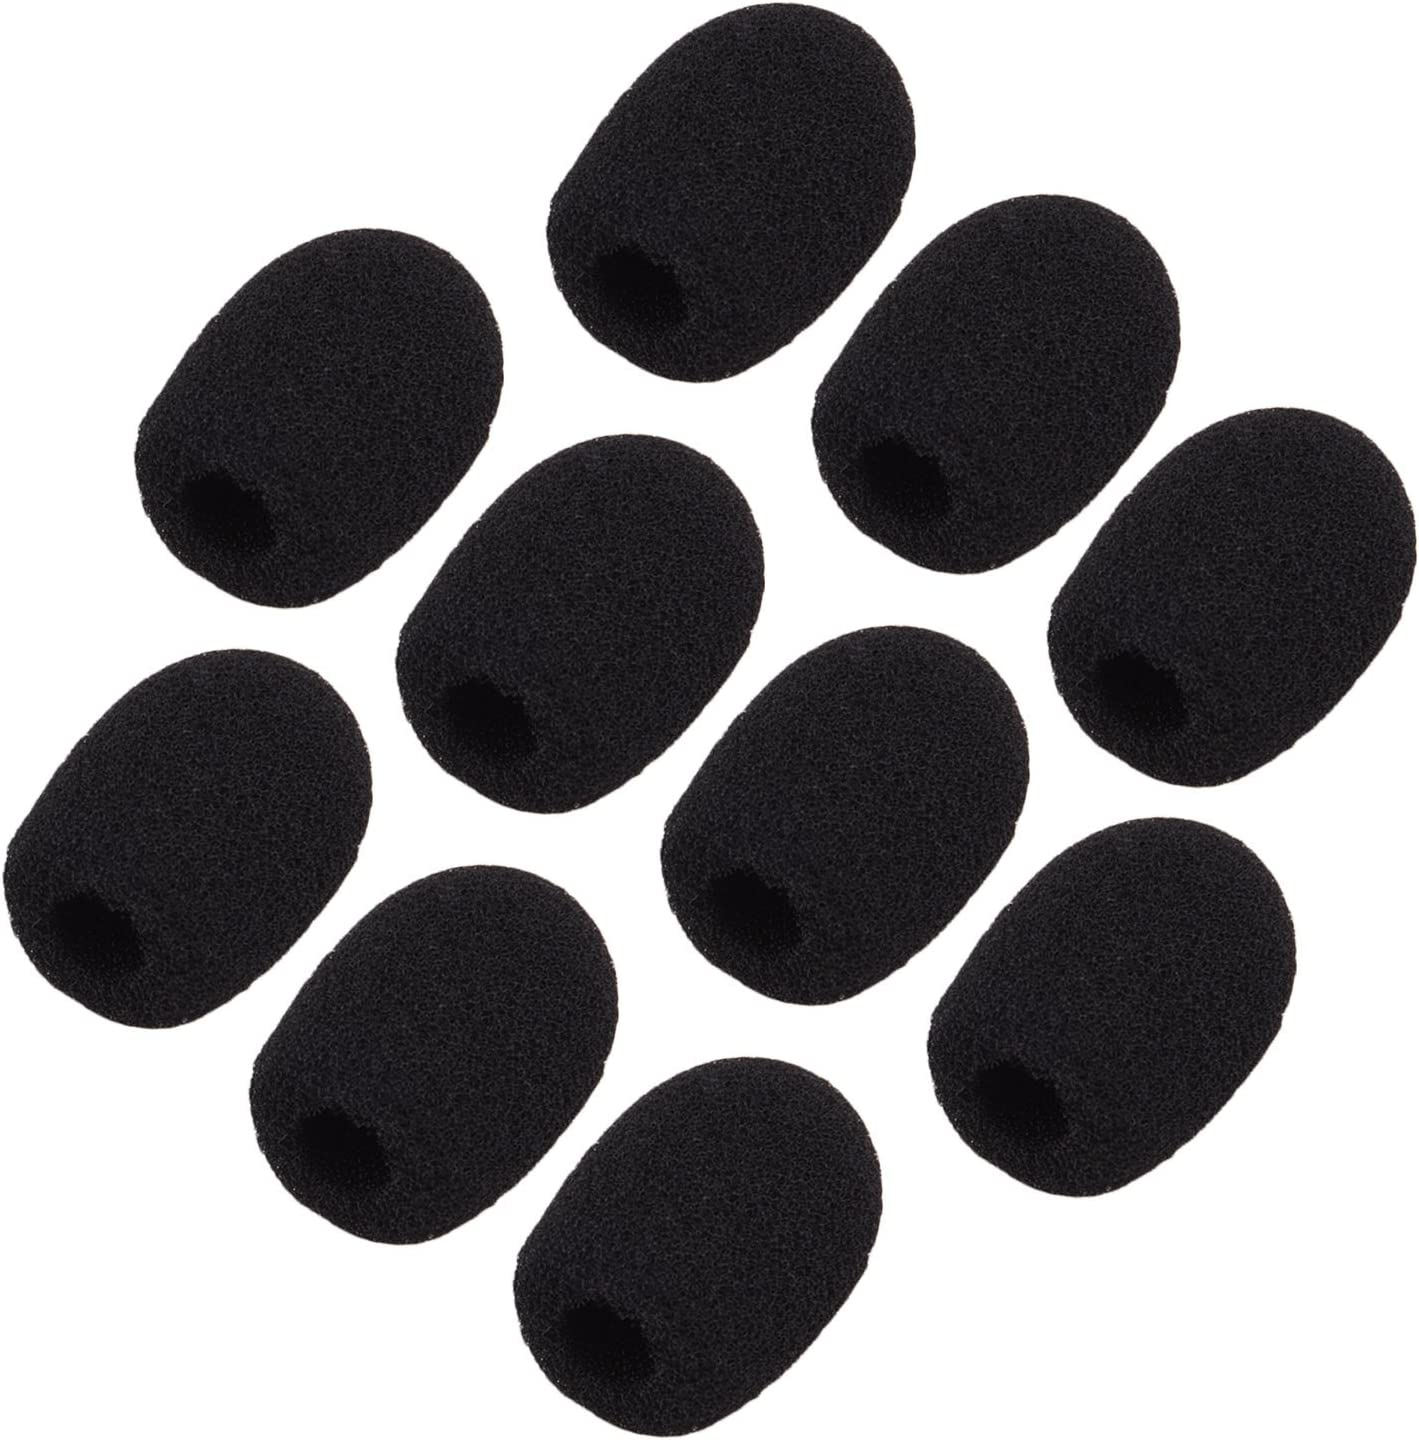 Yiyaqeanca 5Pcs Headset Replacement Foam Microphone Cover Mic Cover Windshield Headset Wind Shield Pop Filter Mic Cover Foam Mic Cover